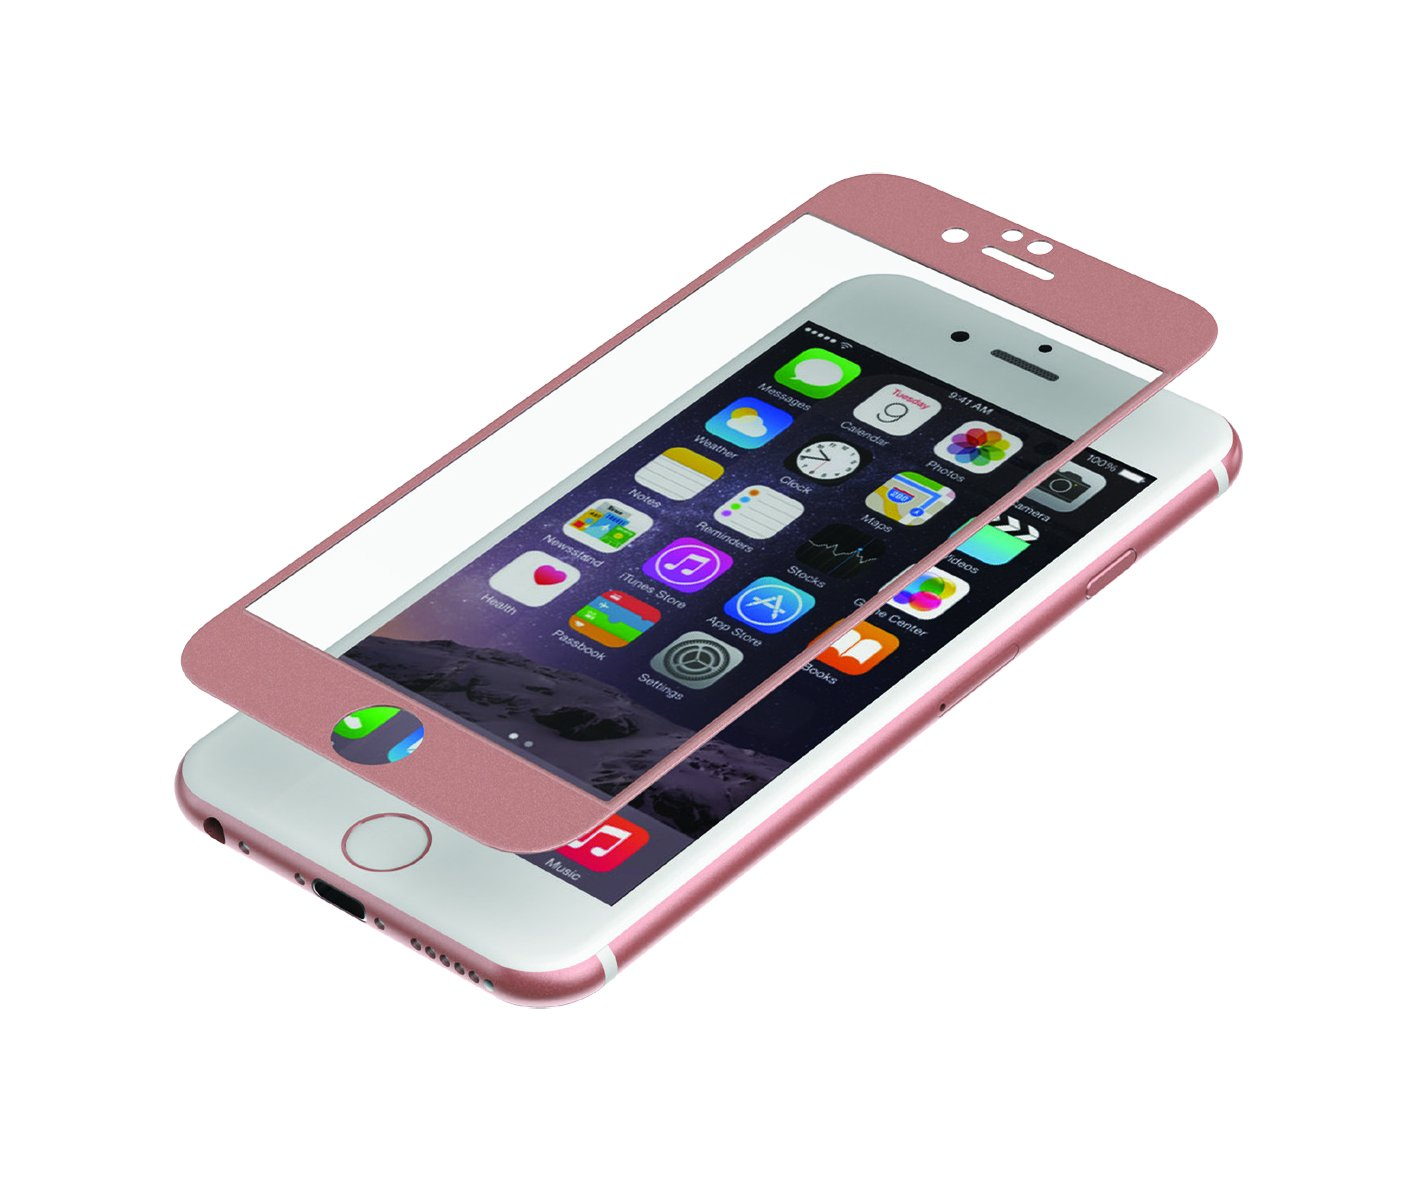 on sale 07de6 bf4a8 ZAGG InvisibleShield Glass Luxe Screen Protector - HD Clarity + Reinforced  Screen Protection for Apple iPhone 6 Plus / iPhone 6s Plus - Rose Gold